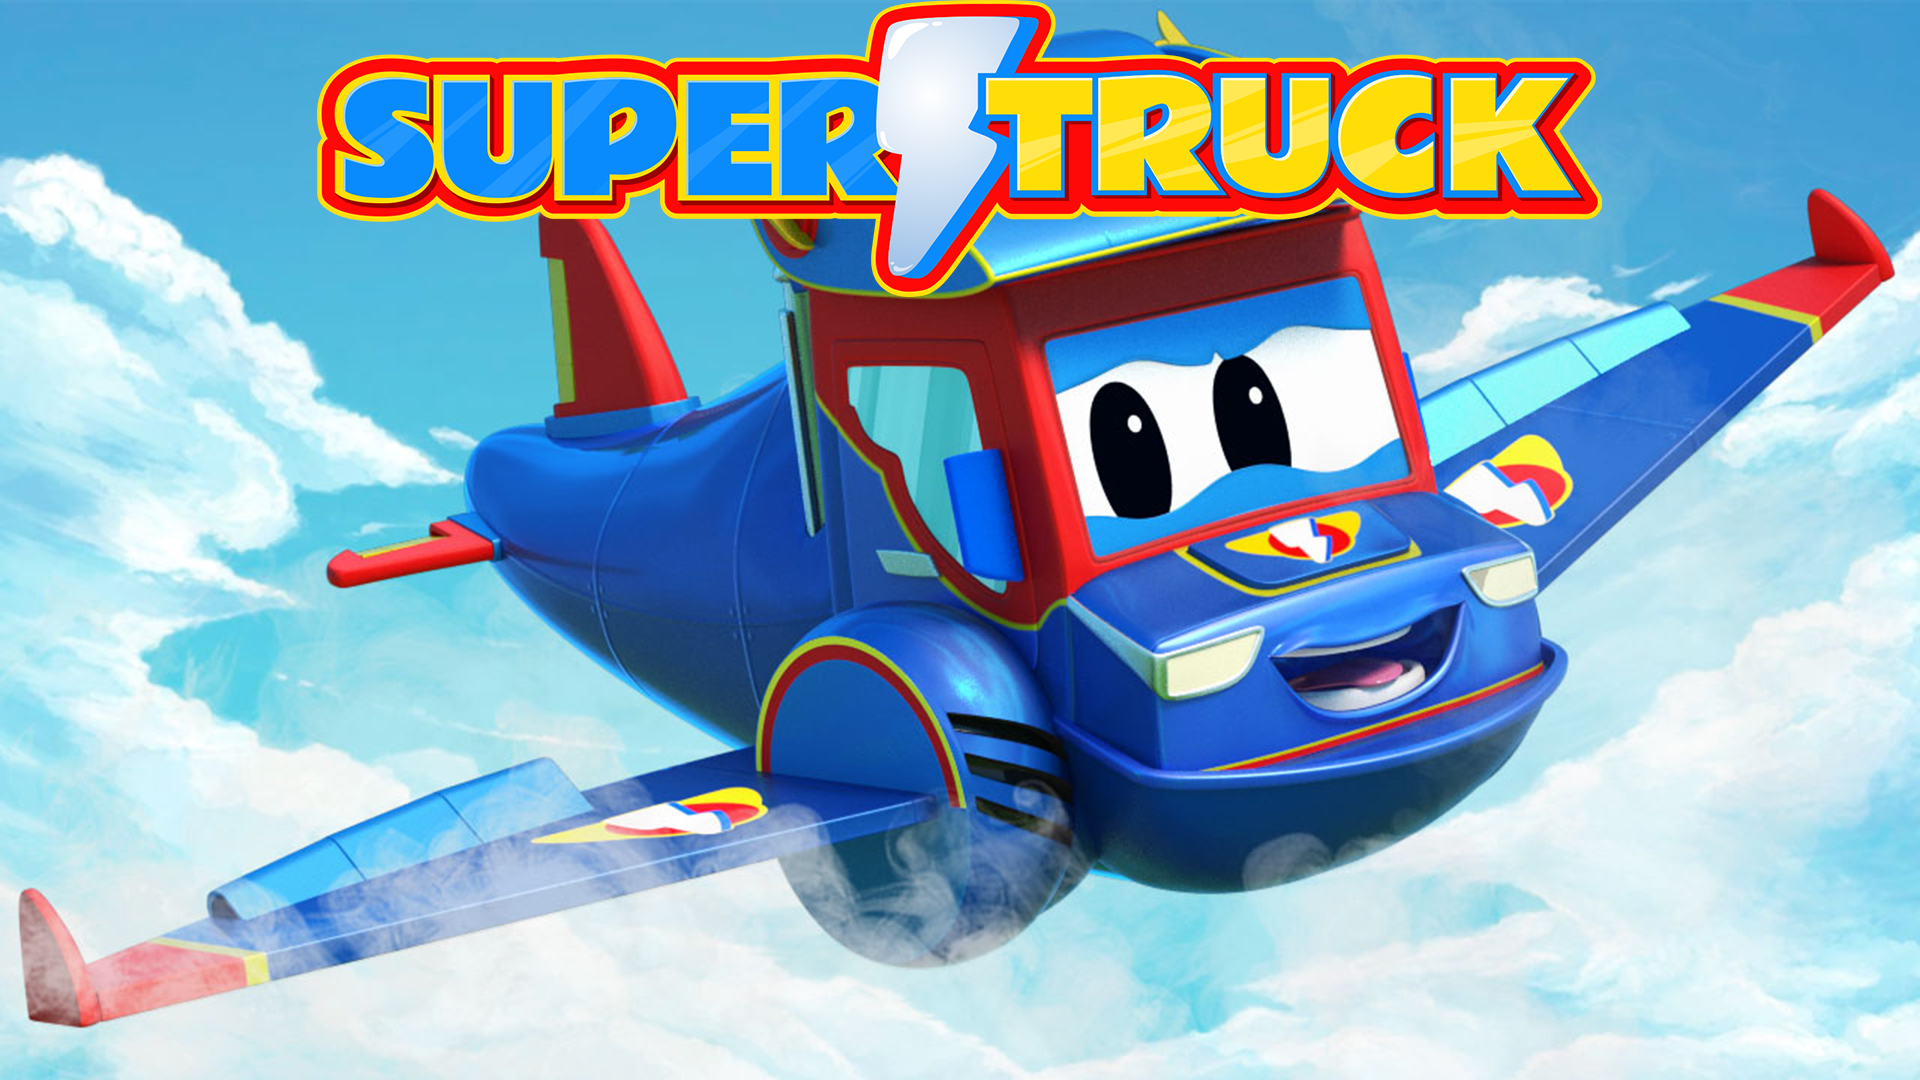 Super Truck - Carl the Transformer